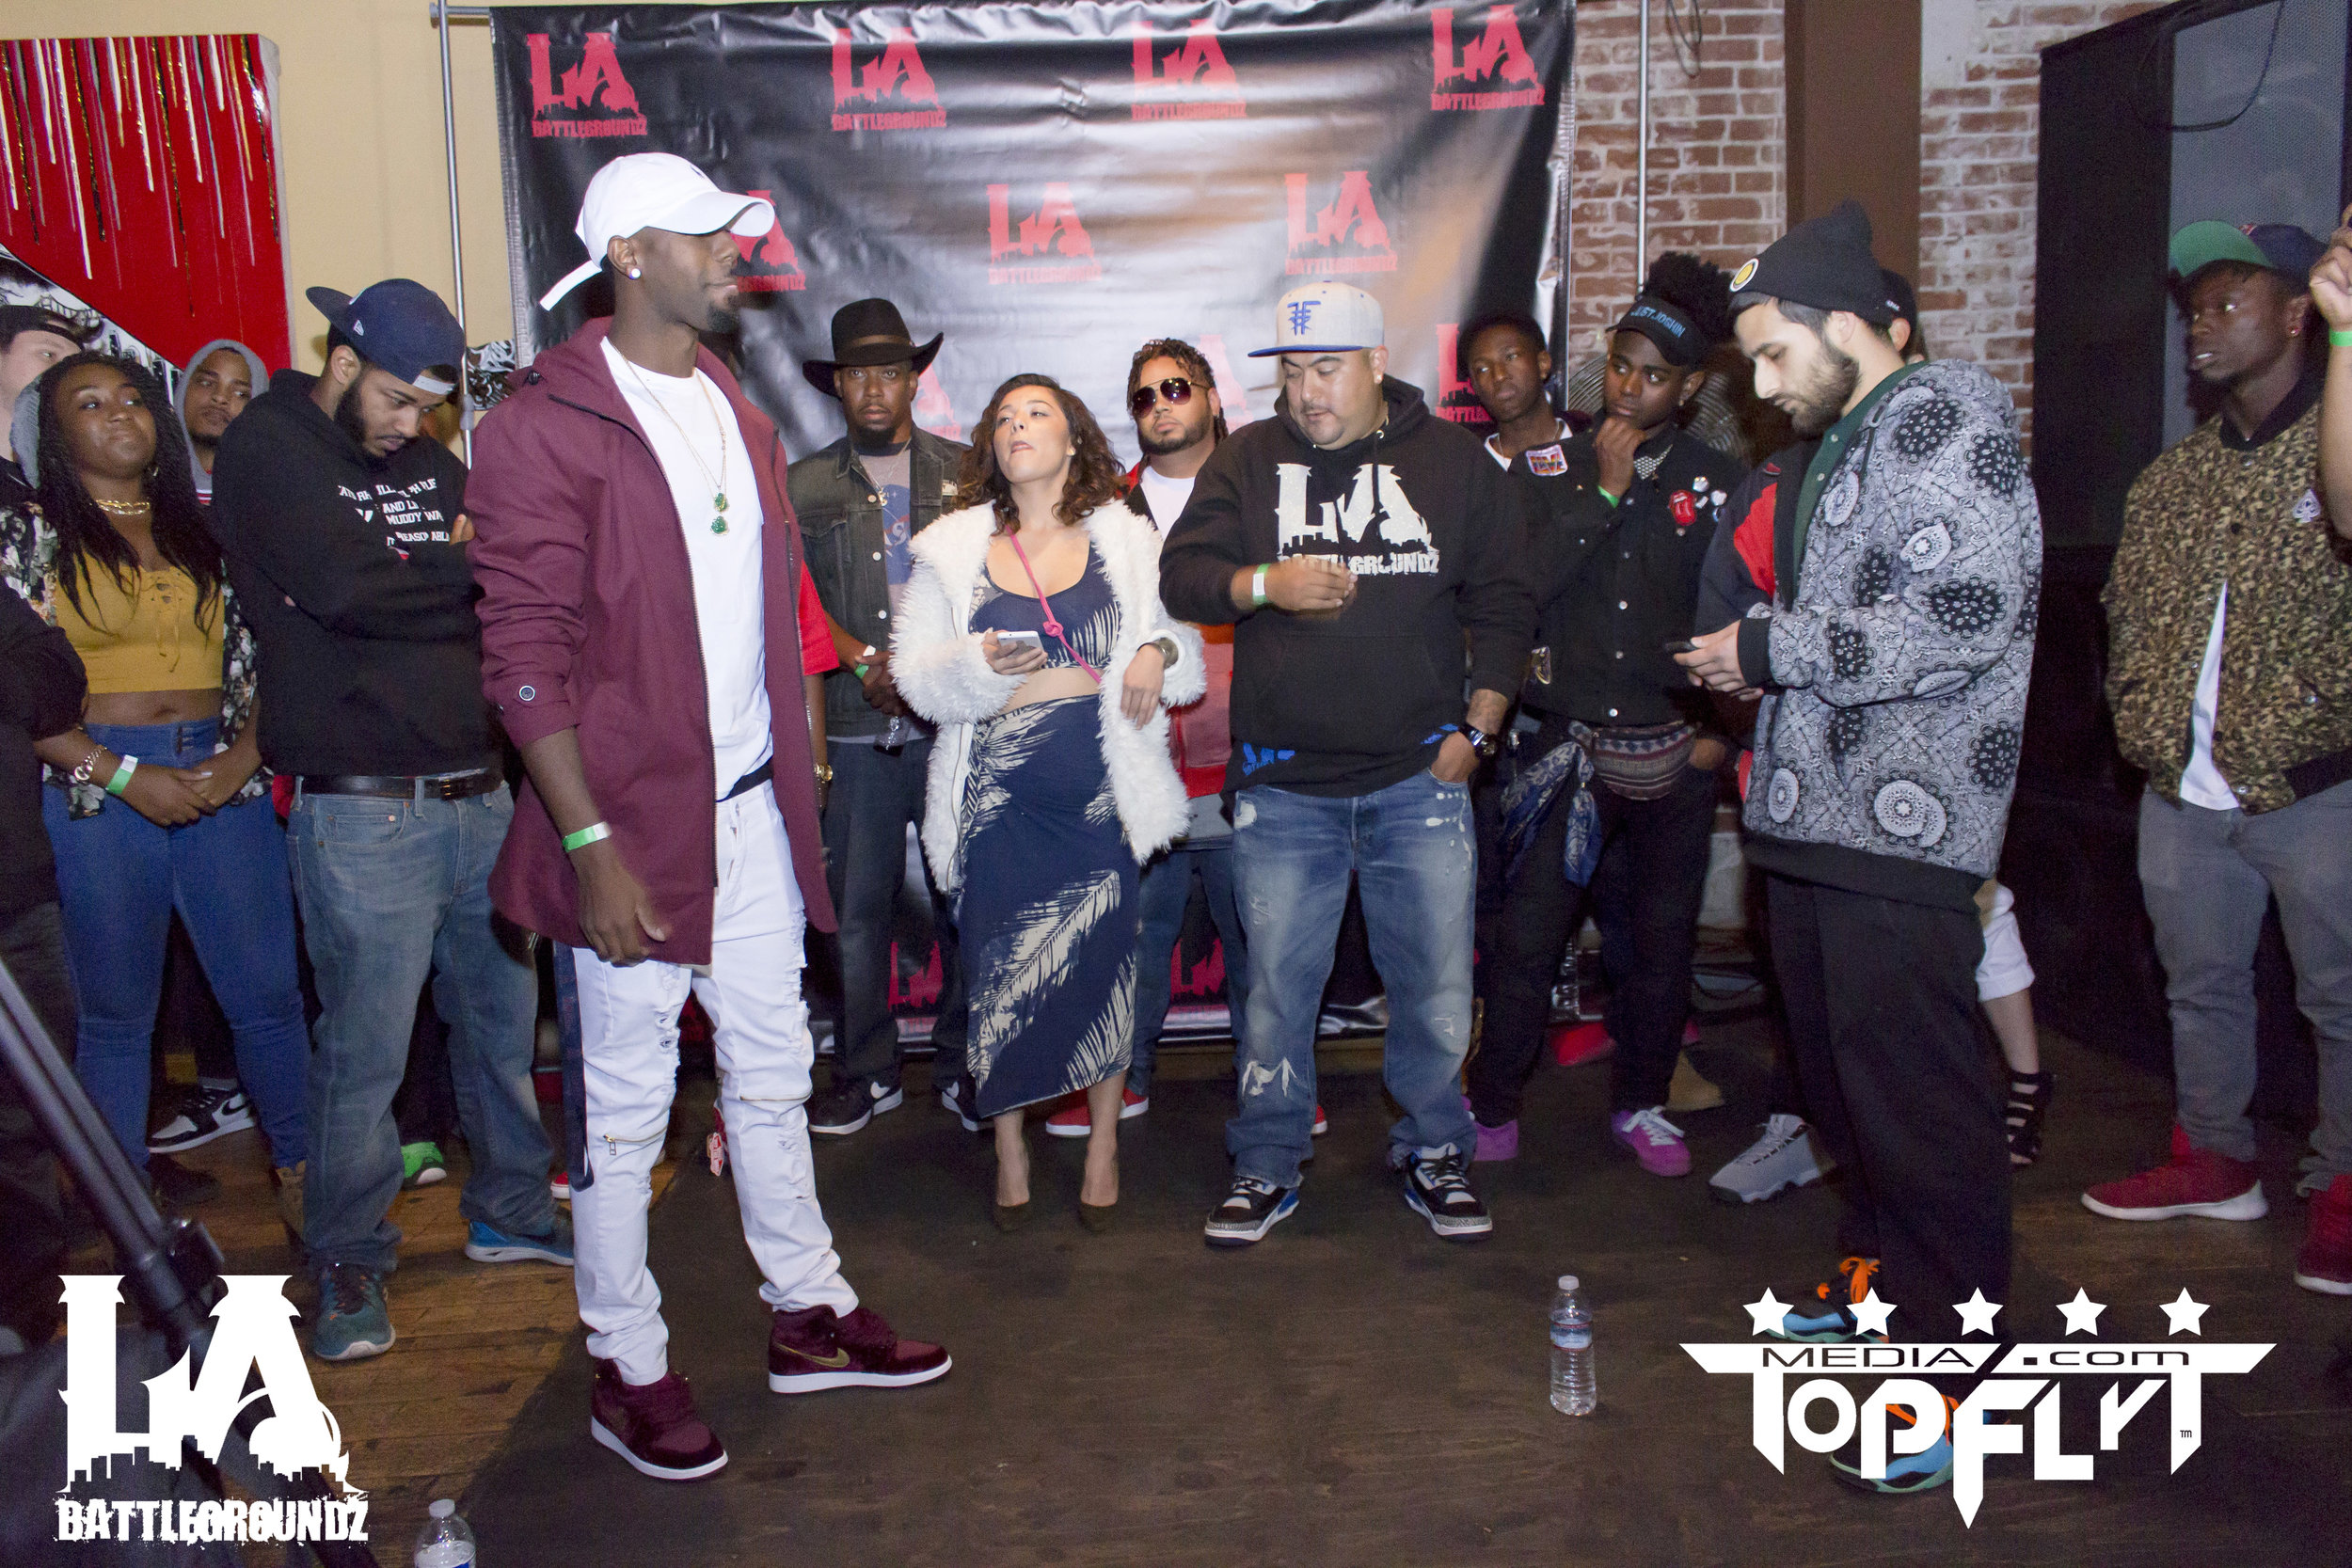 LA Battlegroundz - Decembarfest - The Christening_5.jpg